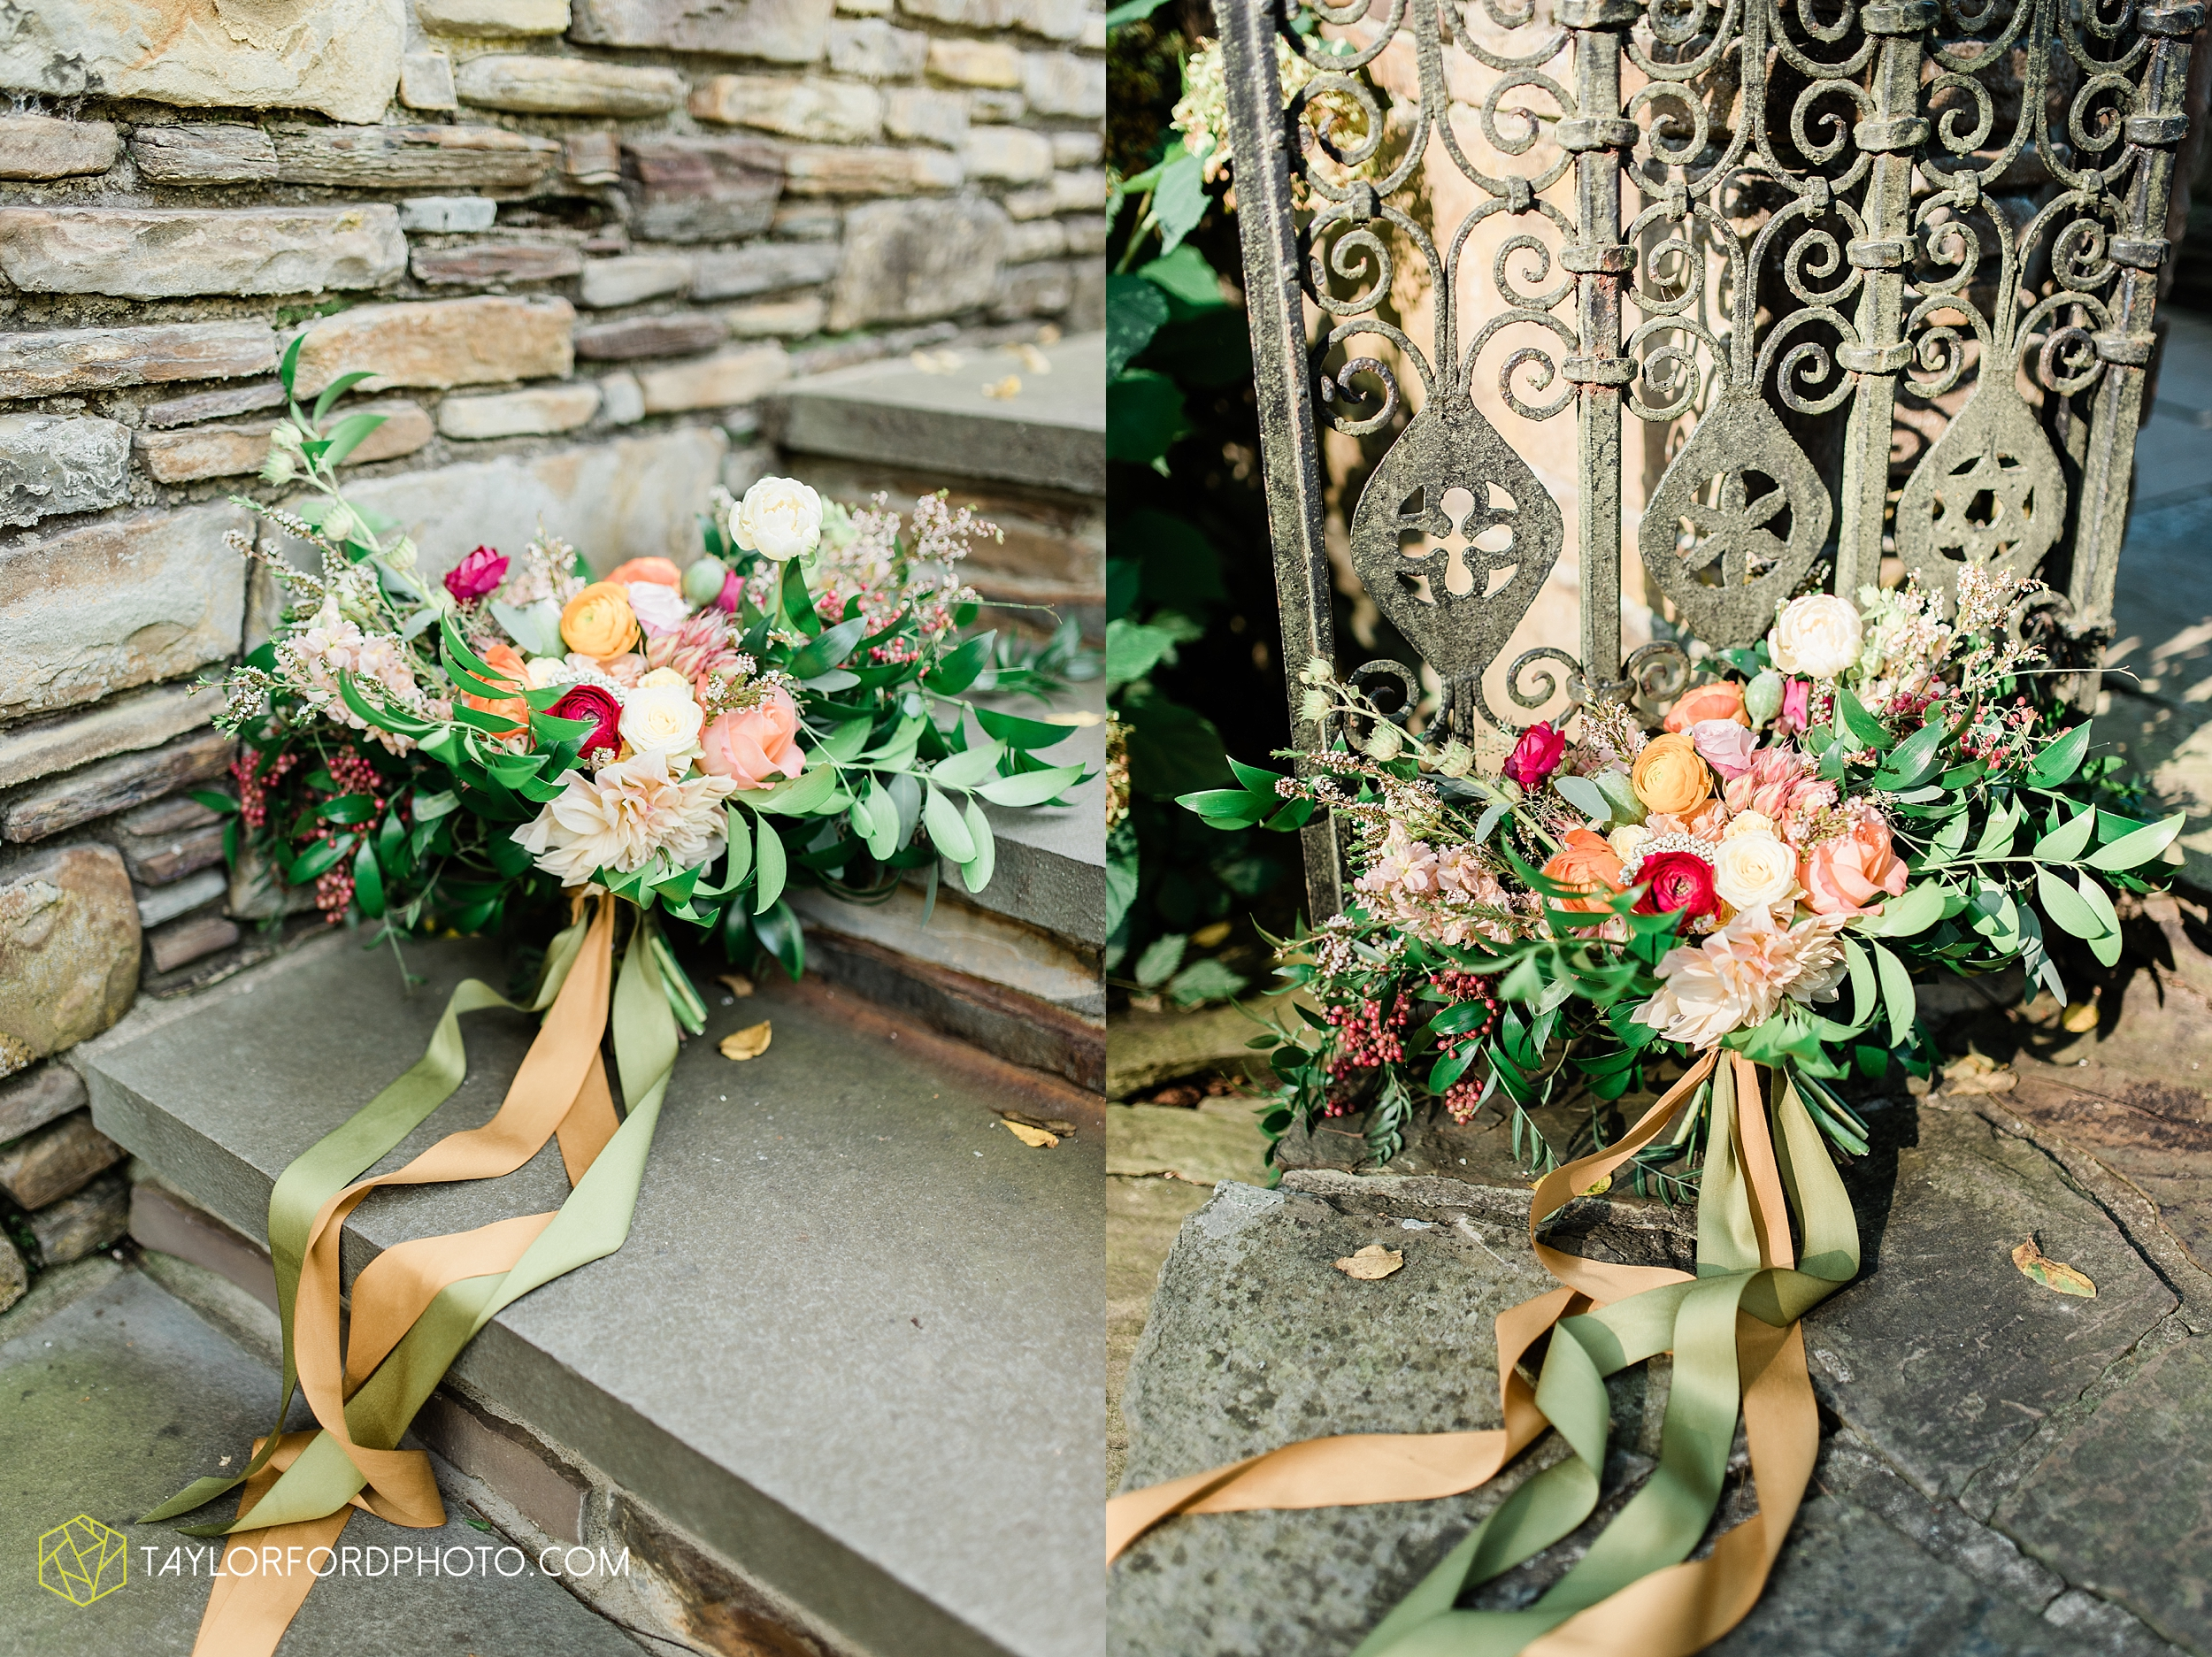 margot-may-evan-kohler-club-at-hillbrook-cleveland-chagrin-falls-outdoor-wedding-bhldn-gardenview-flowers-toledo-photographer-taylor-ford-photographer_9620.jpg